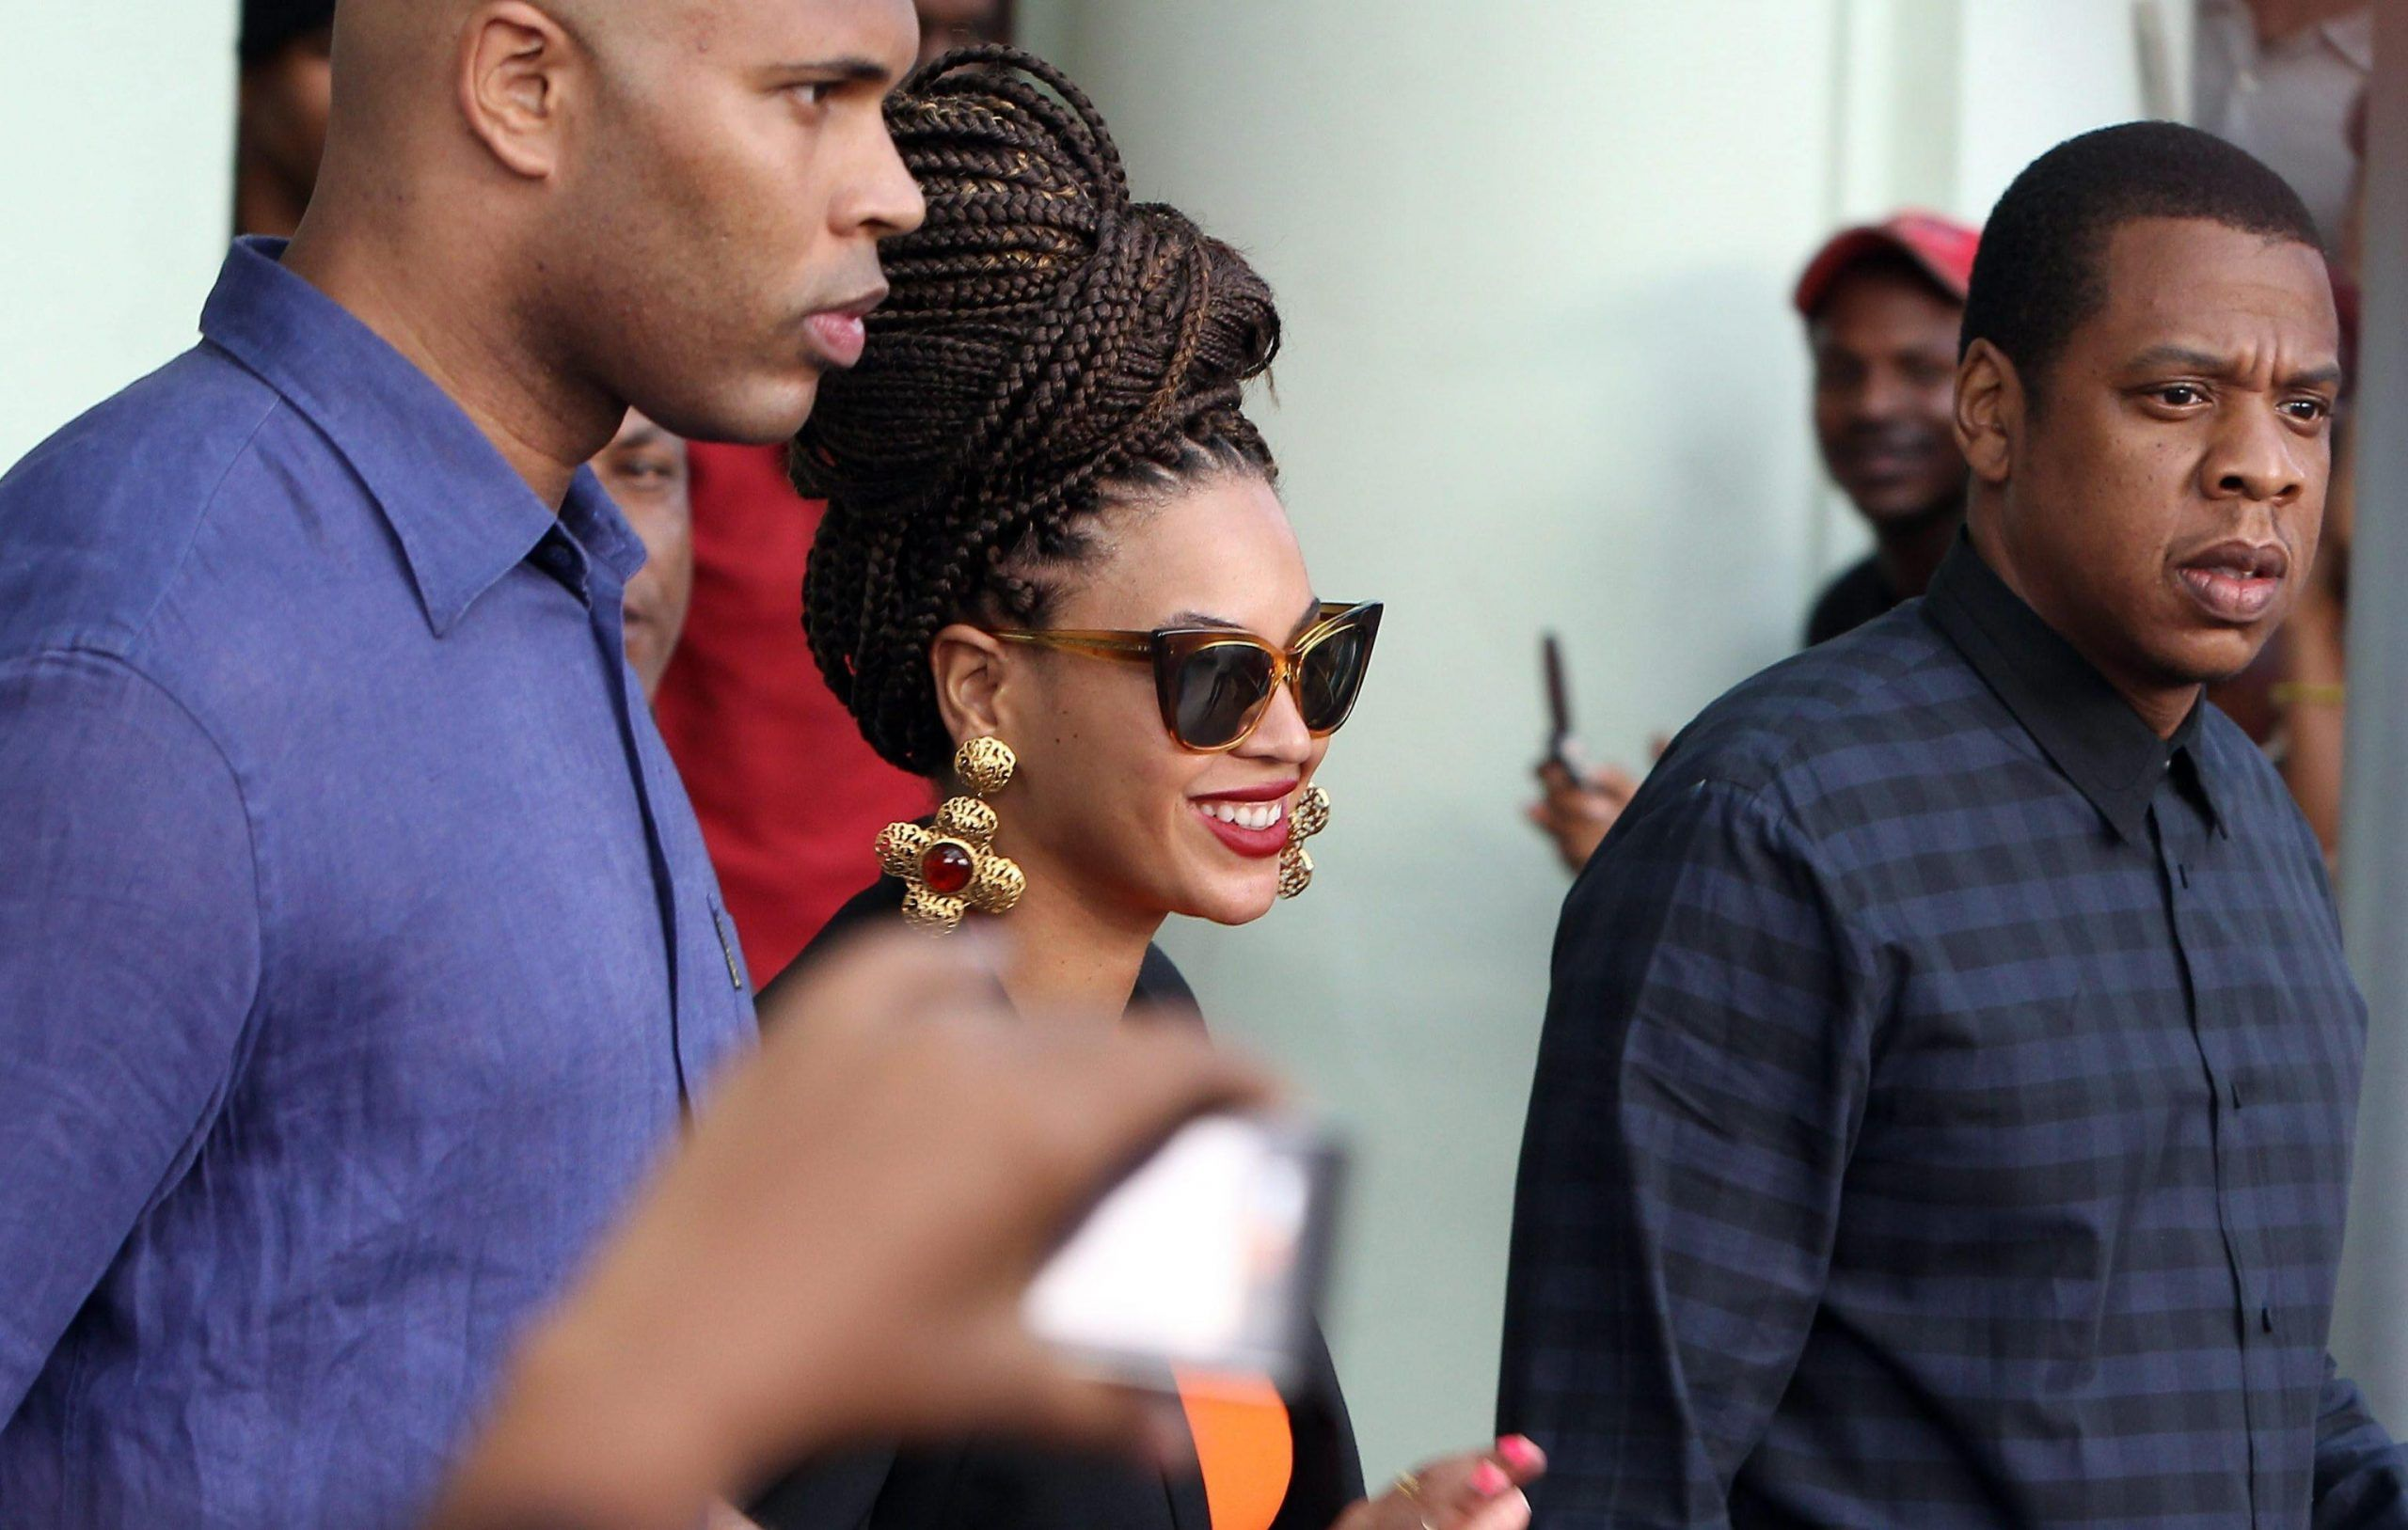 BEYONCE AND JAY Z CELEBRATE THEIR FIFTH ANNIVERSARY IN CUBA